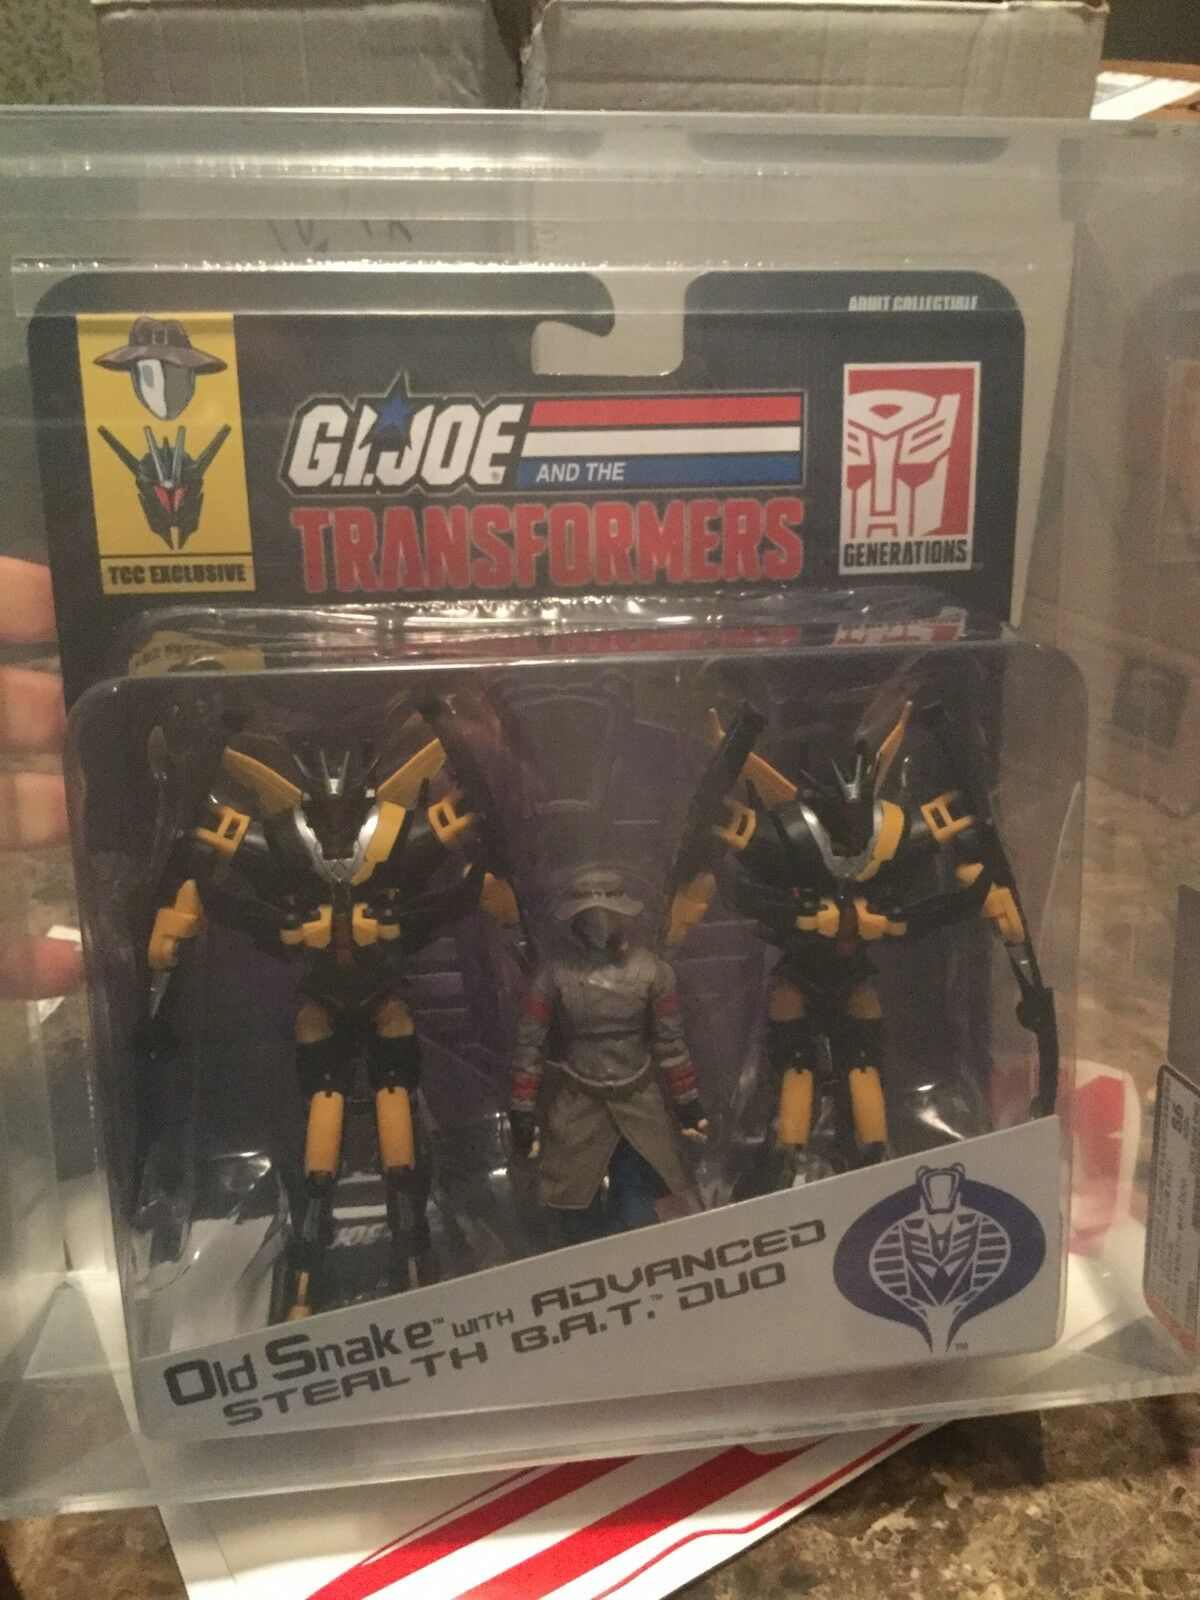 2015 Gi Joe Transformers COLLECTORS CLUB EX vieux Serpent Stealth B.A.T. Duo Action Figure Authority 85